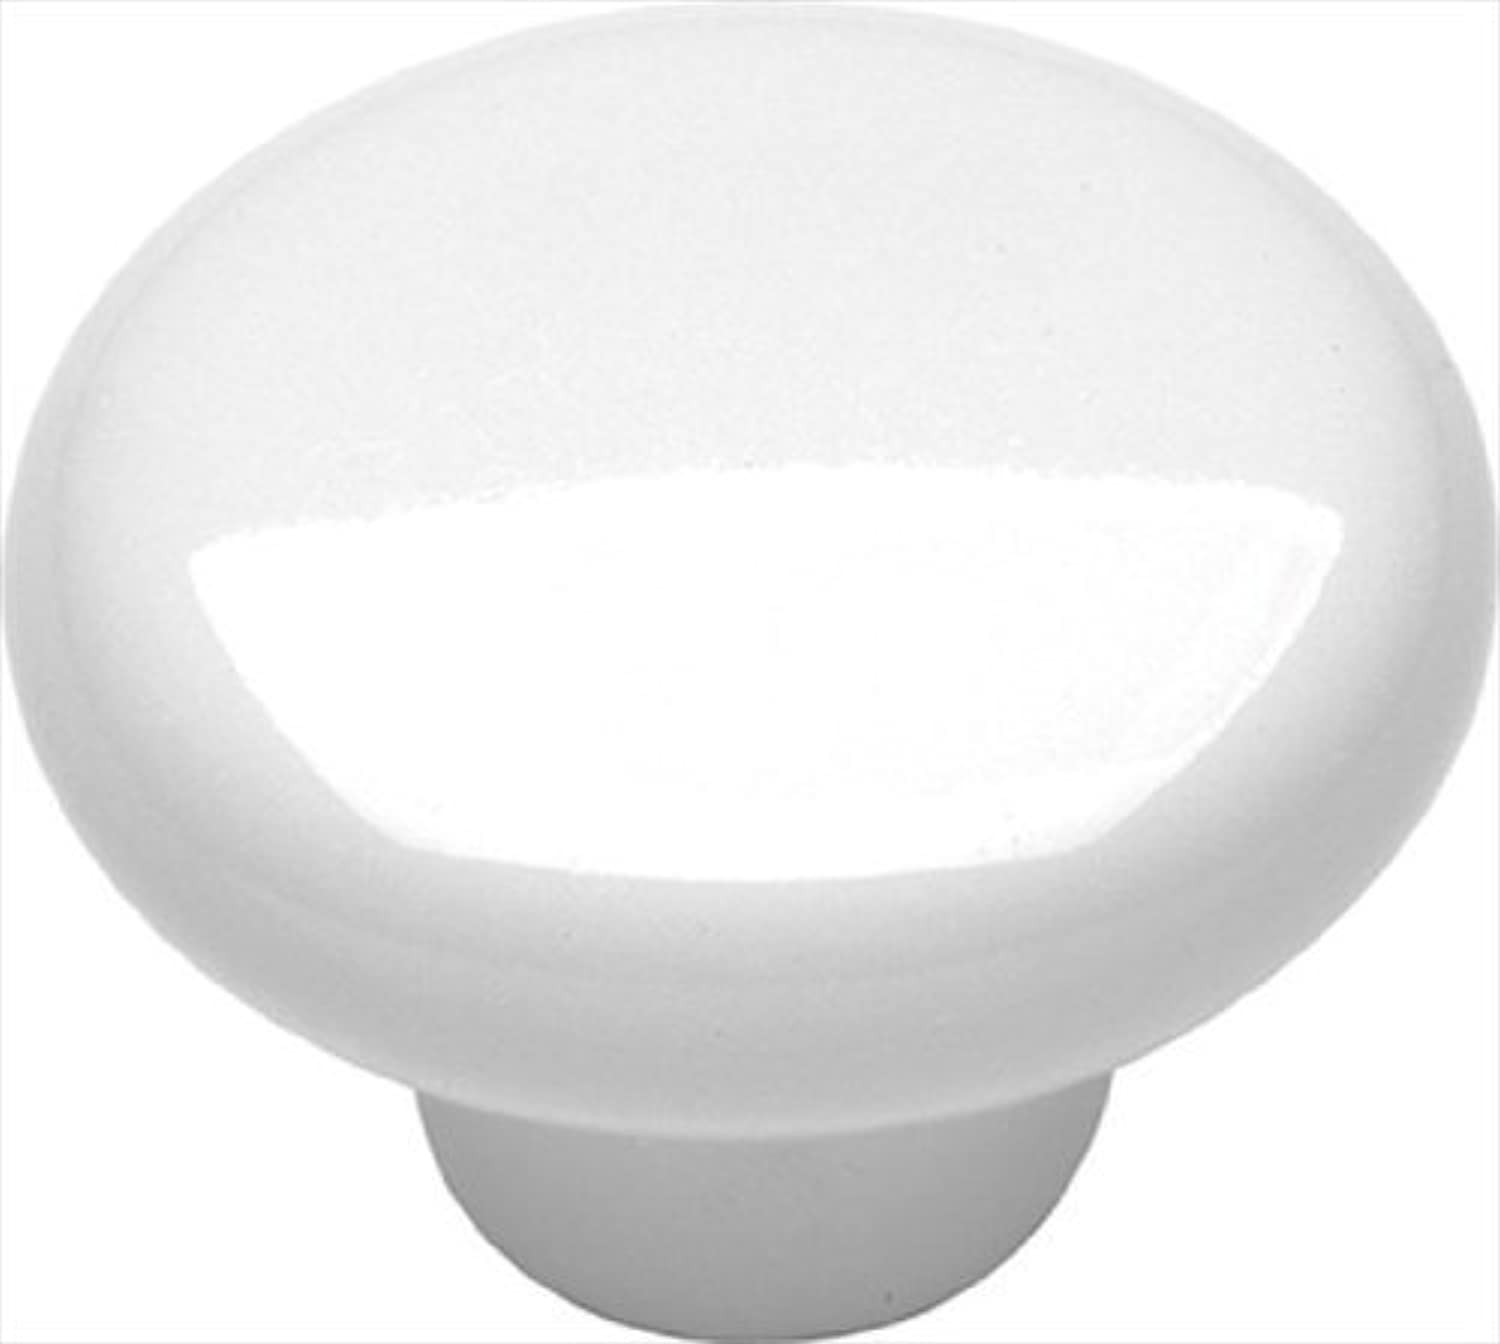 Belwith Keeler Morning Sun Collection 1 1 4 Cabinet Knob White Porcelain by Hickory Hardware